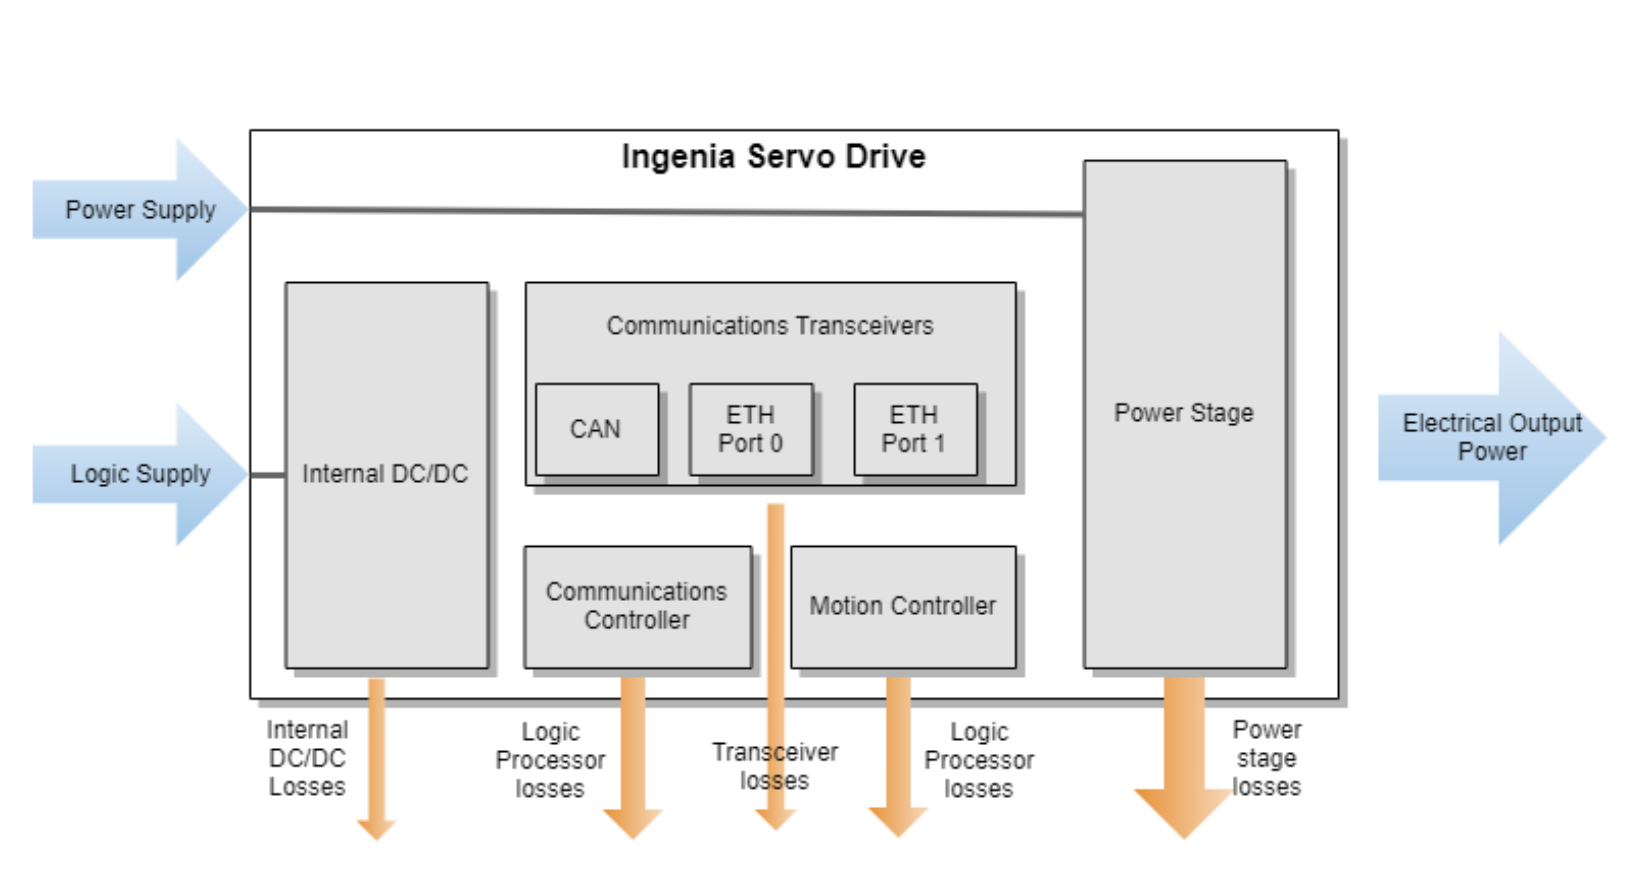 Power loss sources in a Servo Drive